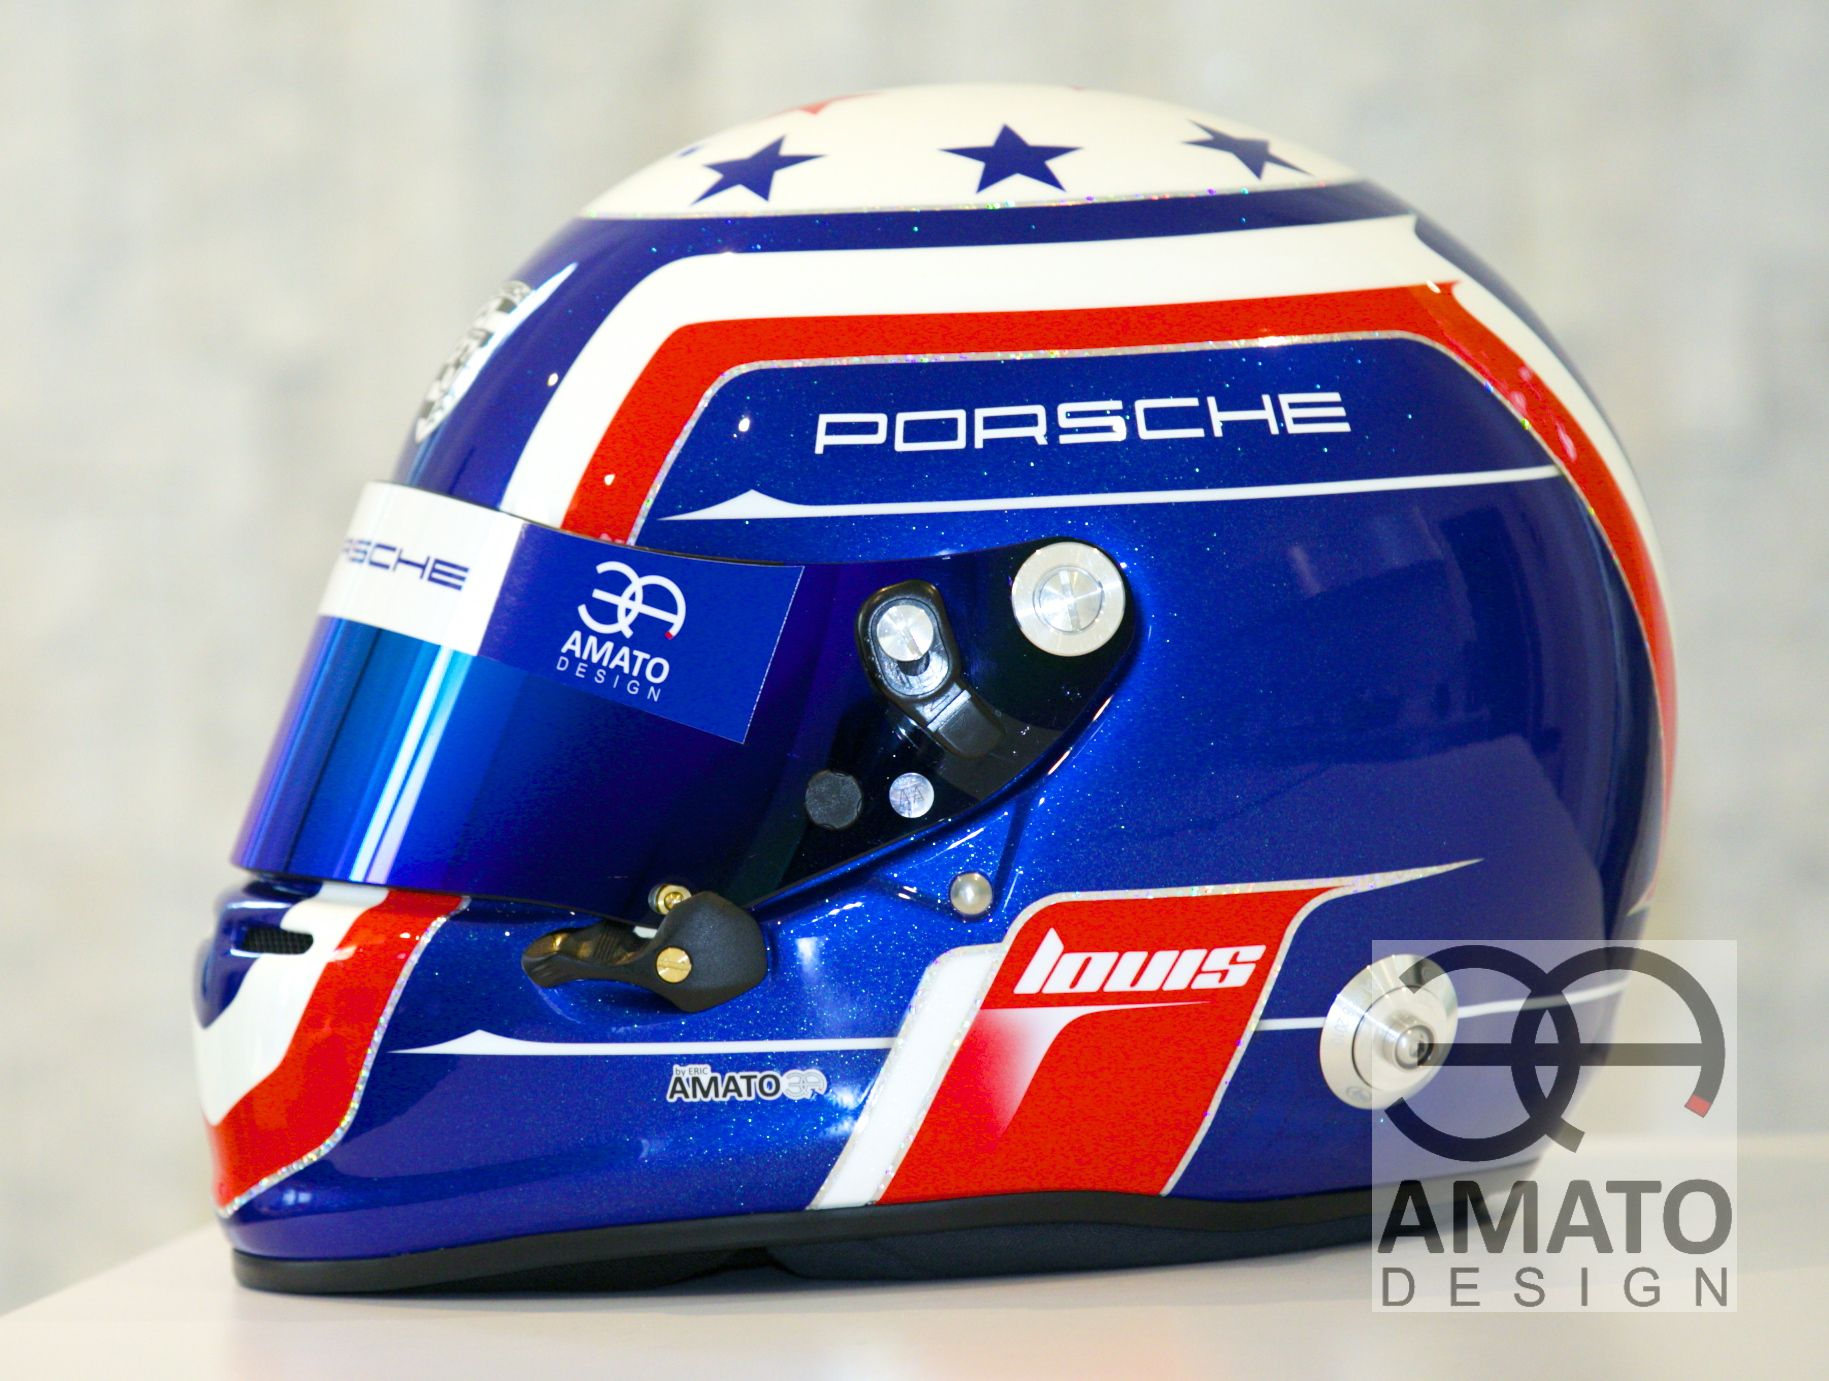 Casque AMATO DESIGN Louis S